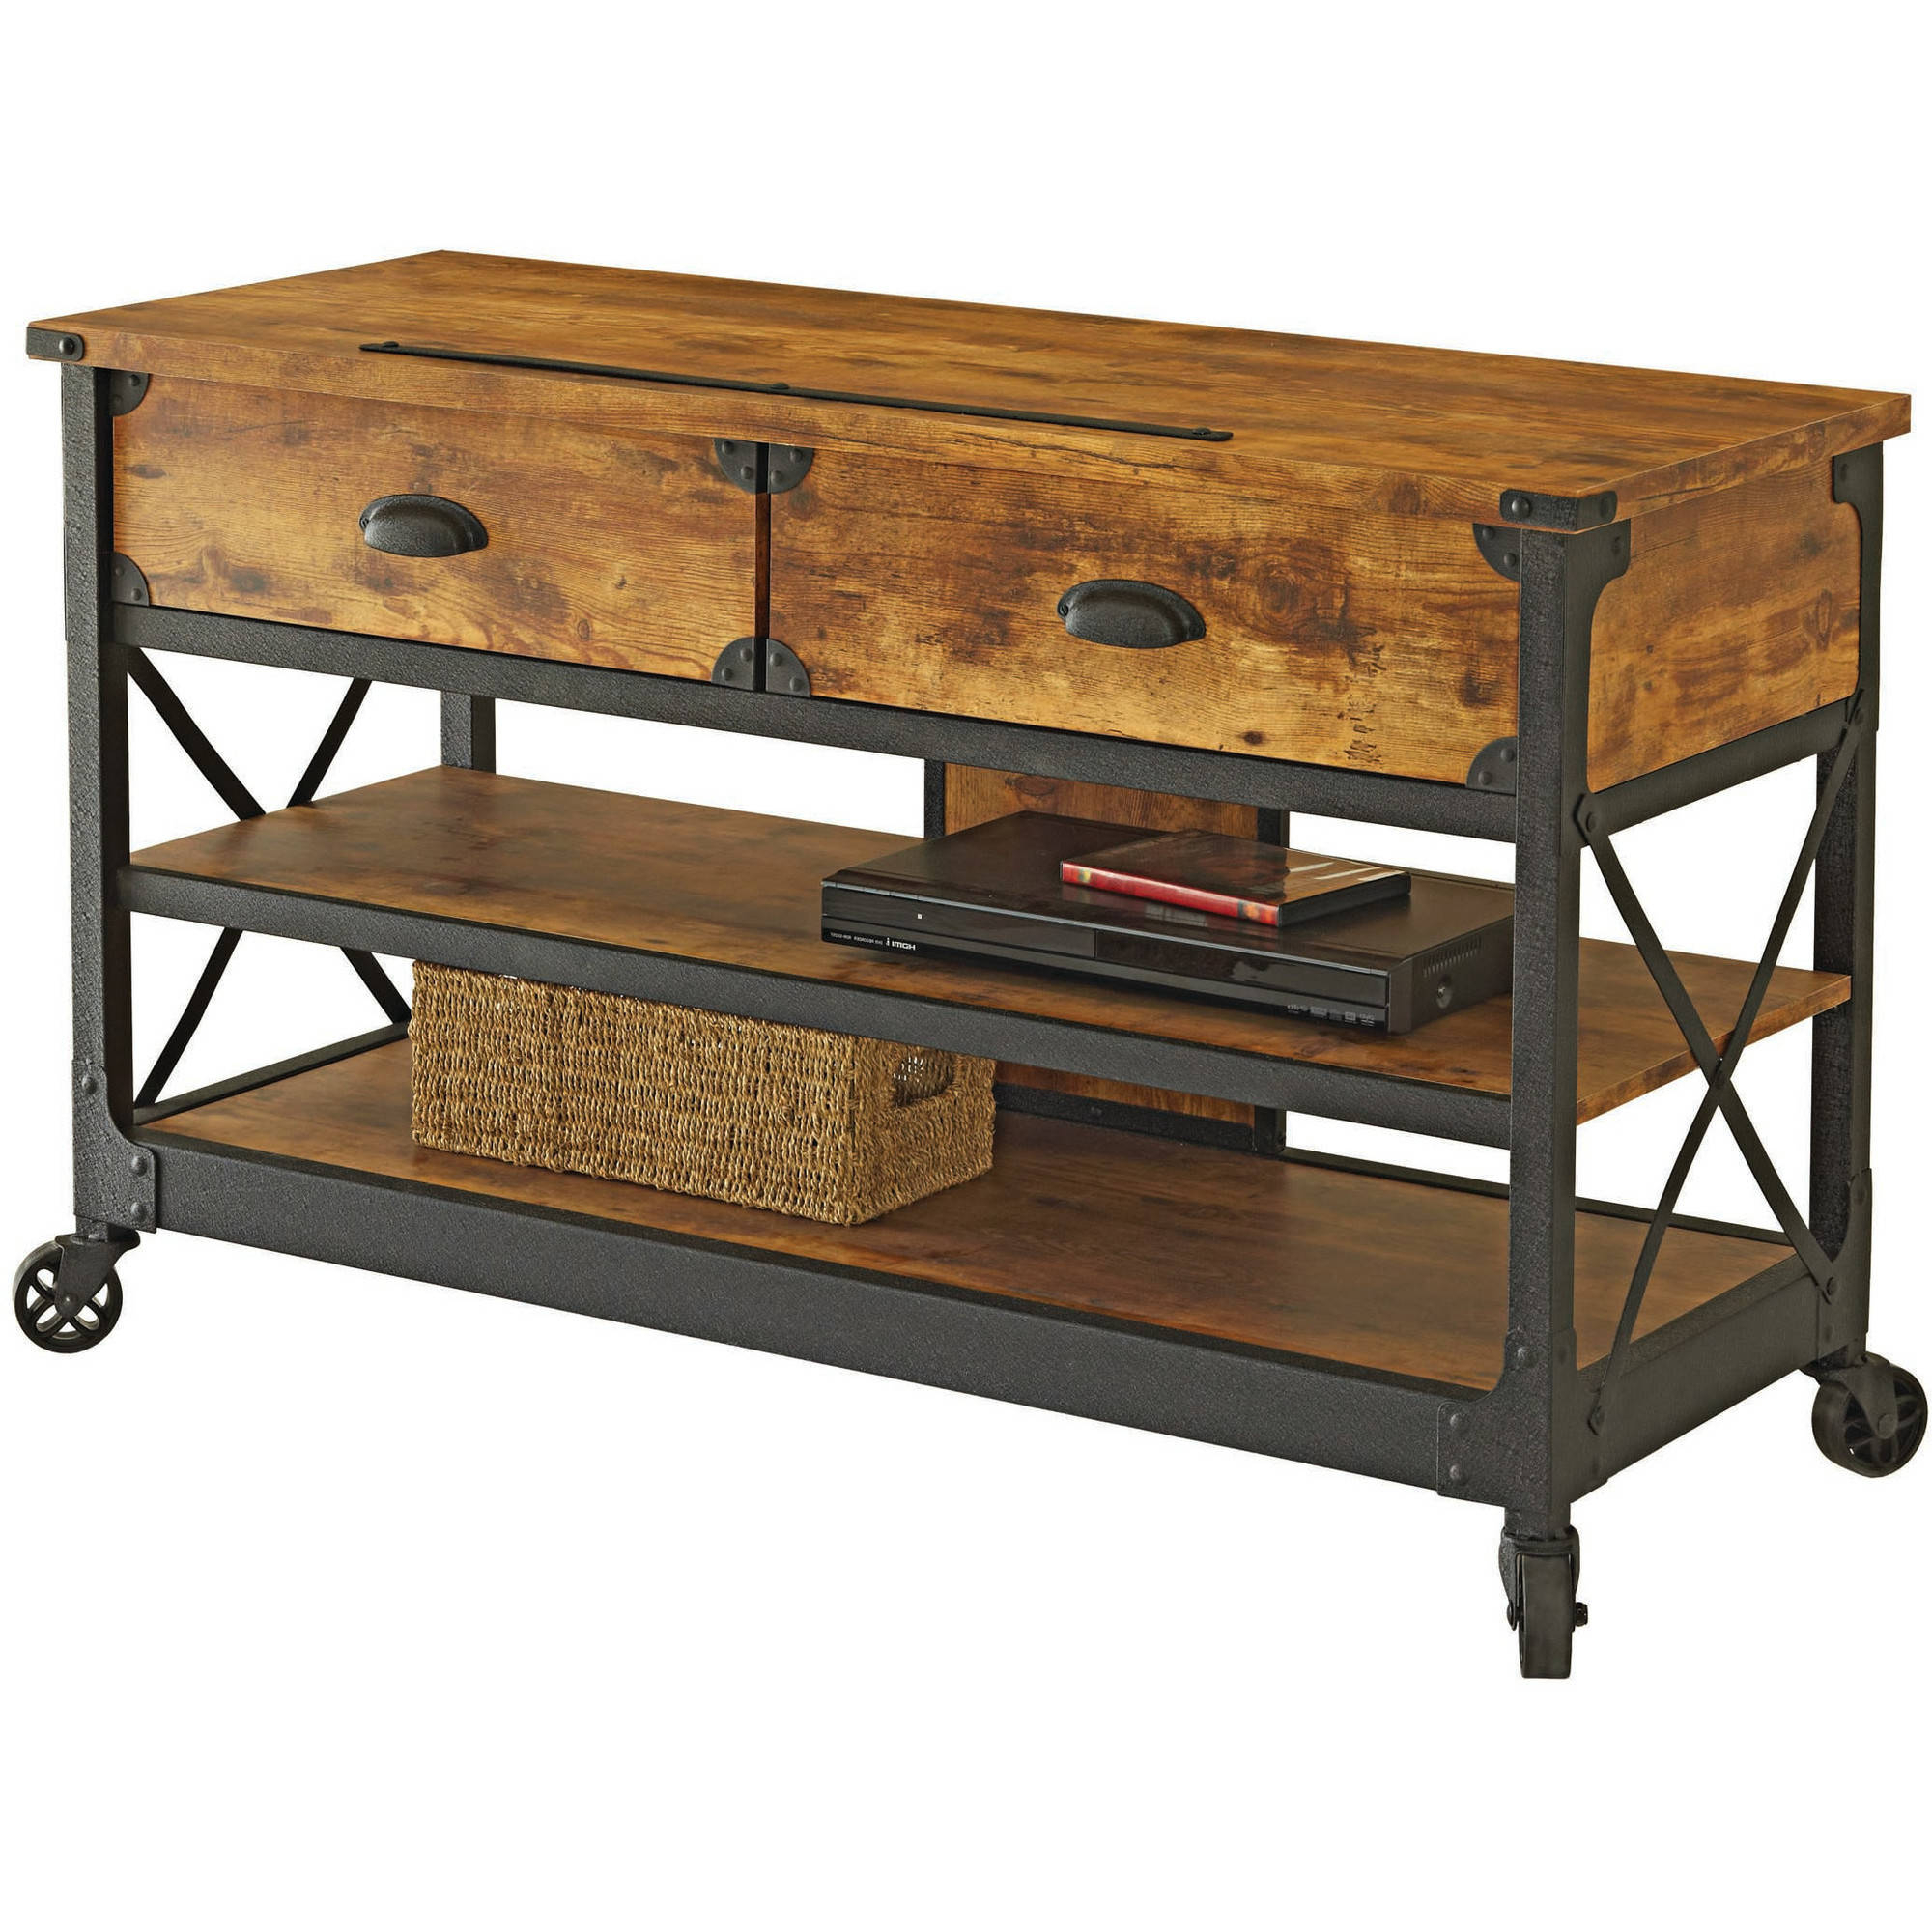 Famous Better Homes & Gardens Rustic Country Tv Stand For Tvs Up To 52 Throughout Reclaimed Wood And Metal Tv Stands (Gallery 1 of 20)